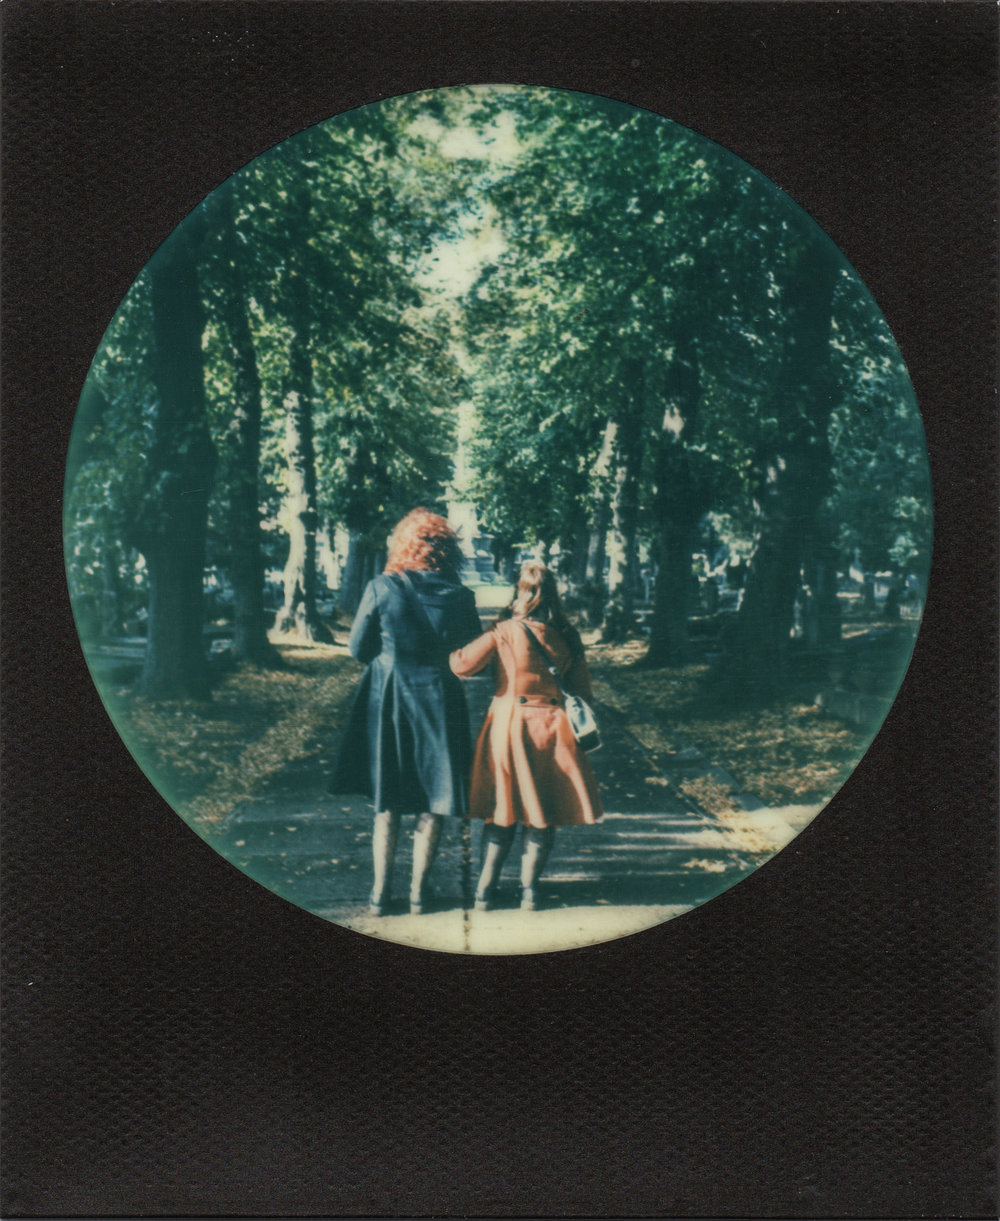 Romantic Walk in a Cemetary | Polaroid SX70 | Impossible Color | Karin Claus